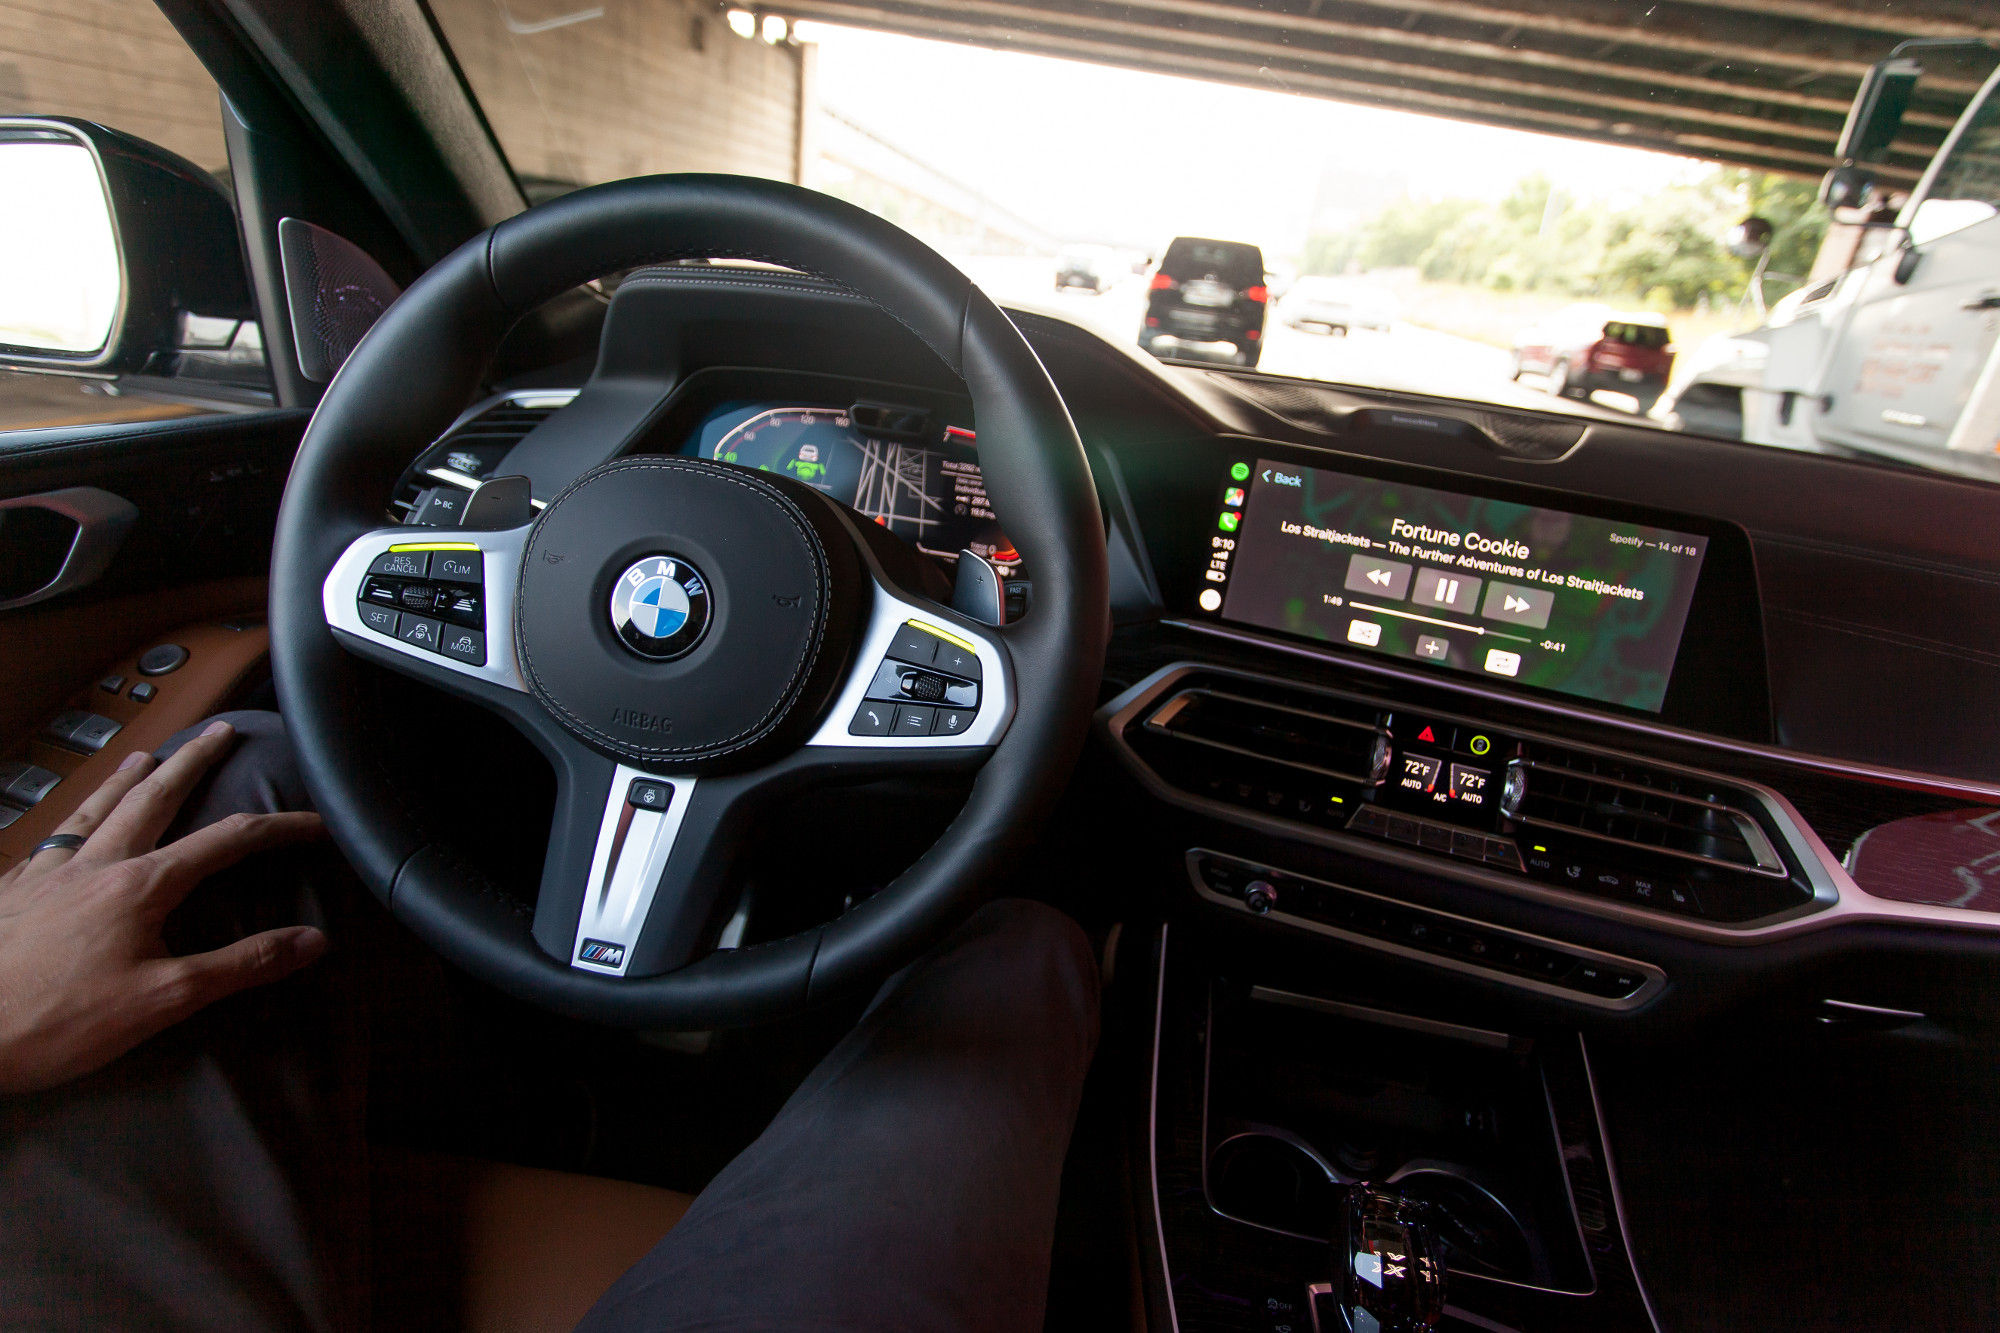 Hands Free Driving in the BMW X7 M50i